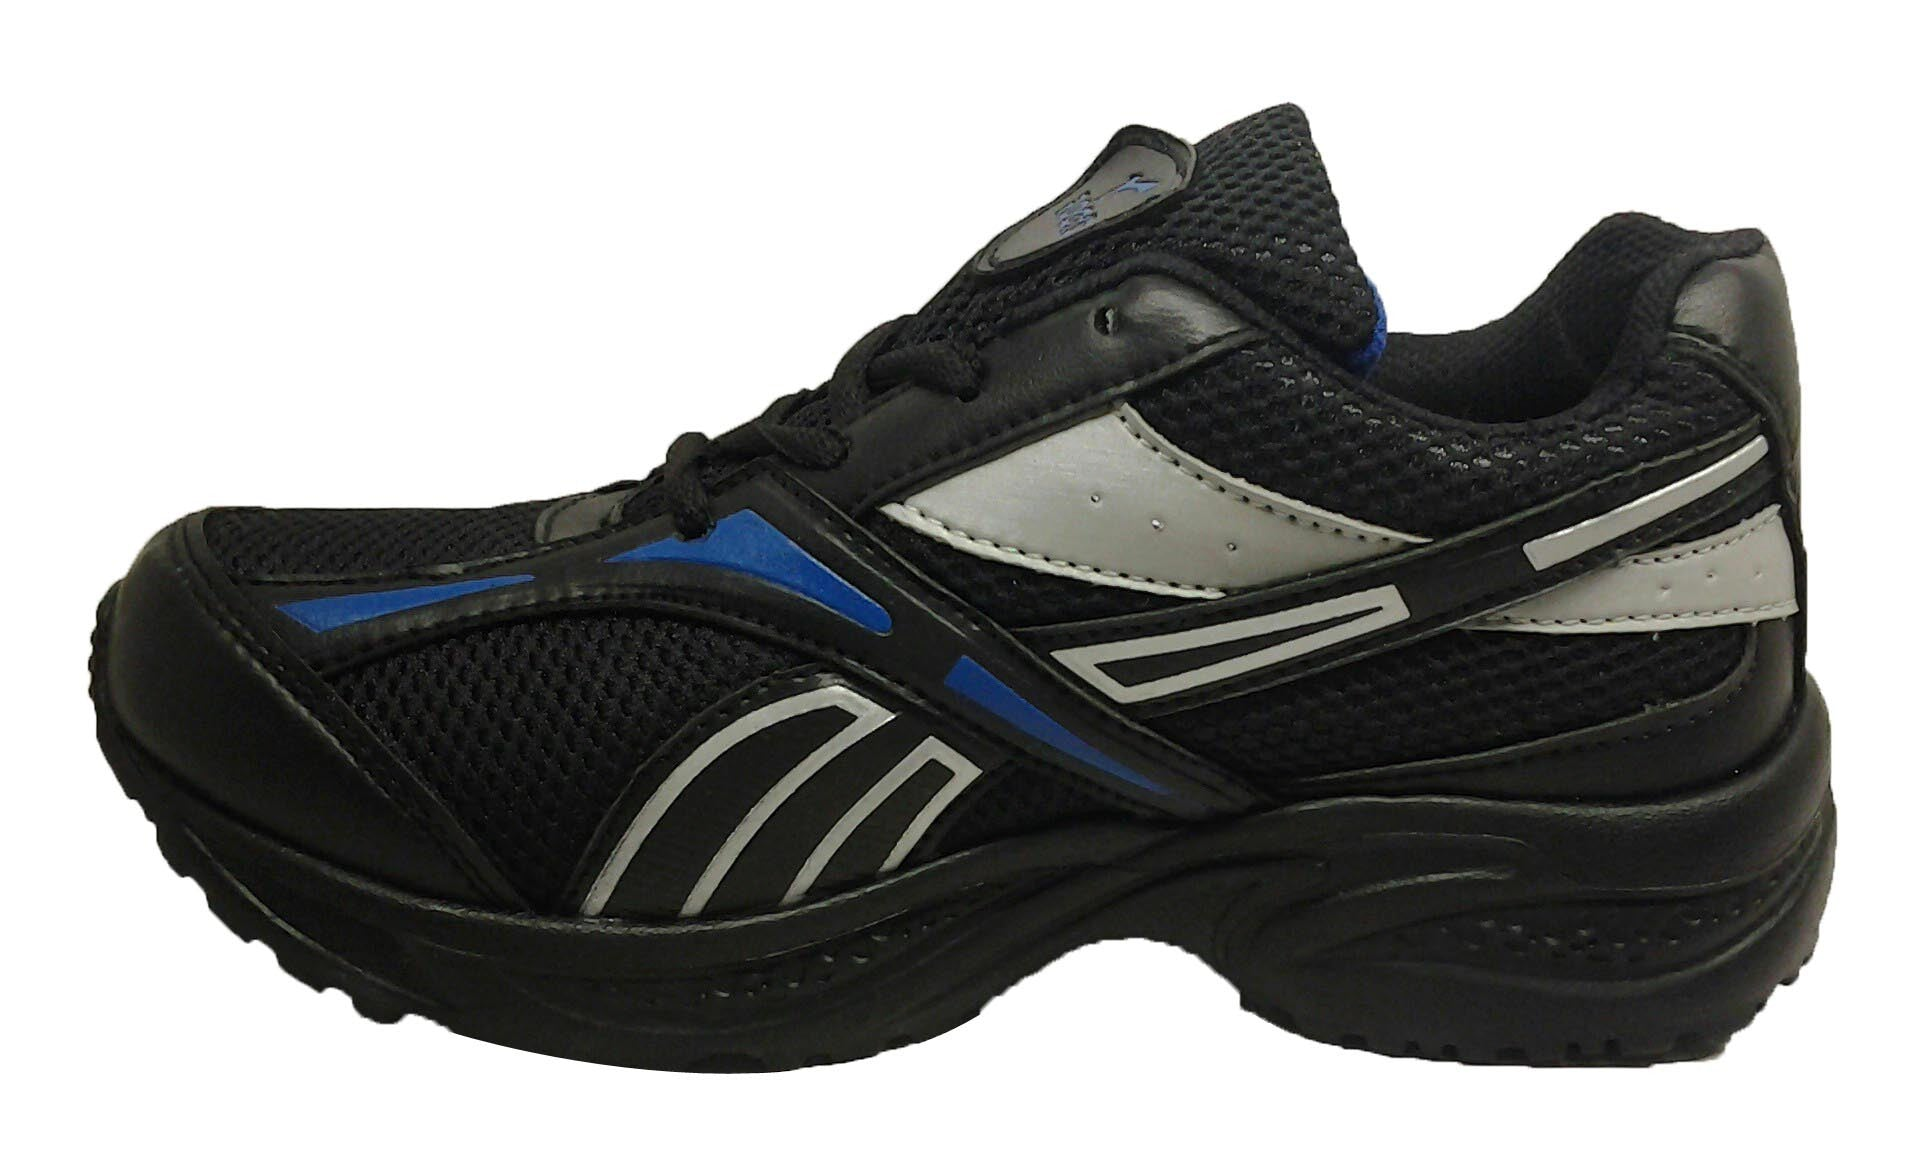 Goyalsons Sport Shoes Wsl 409